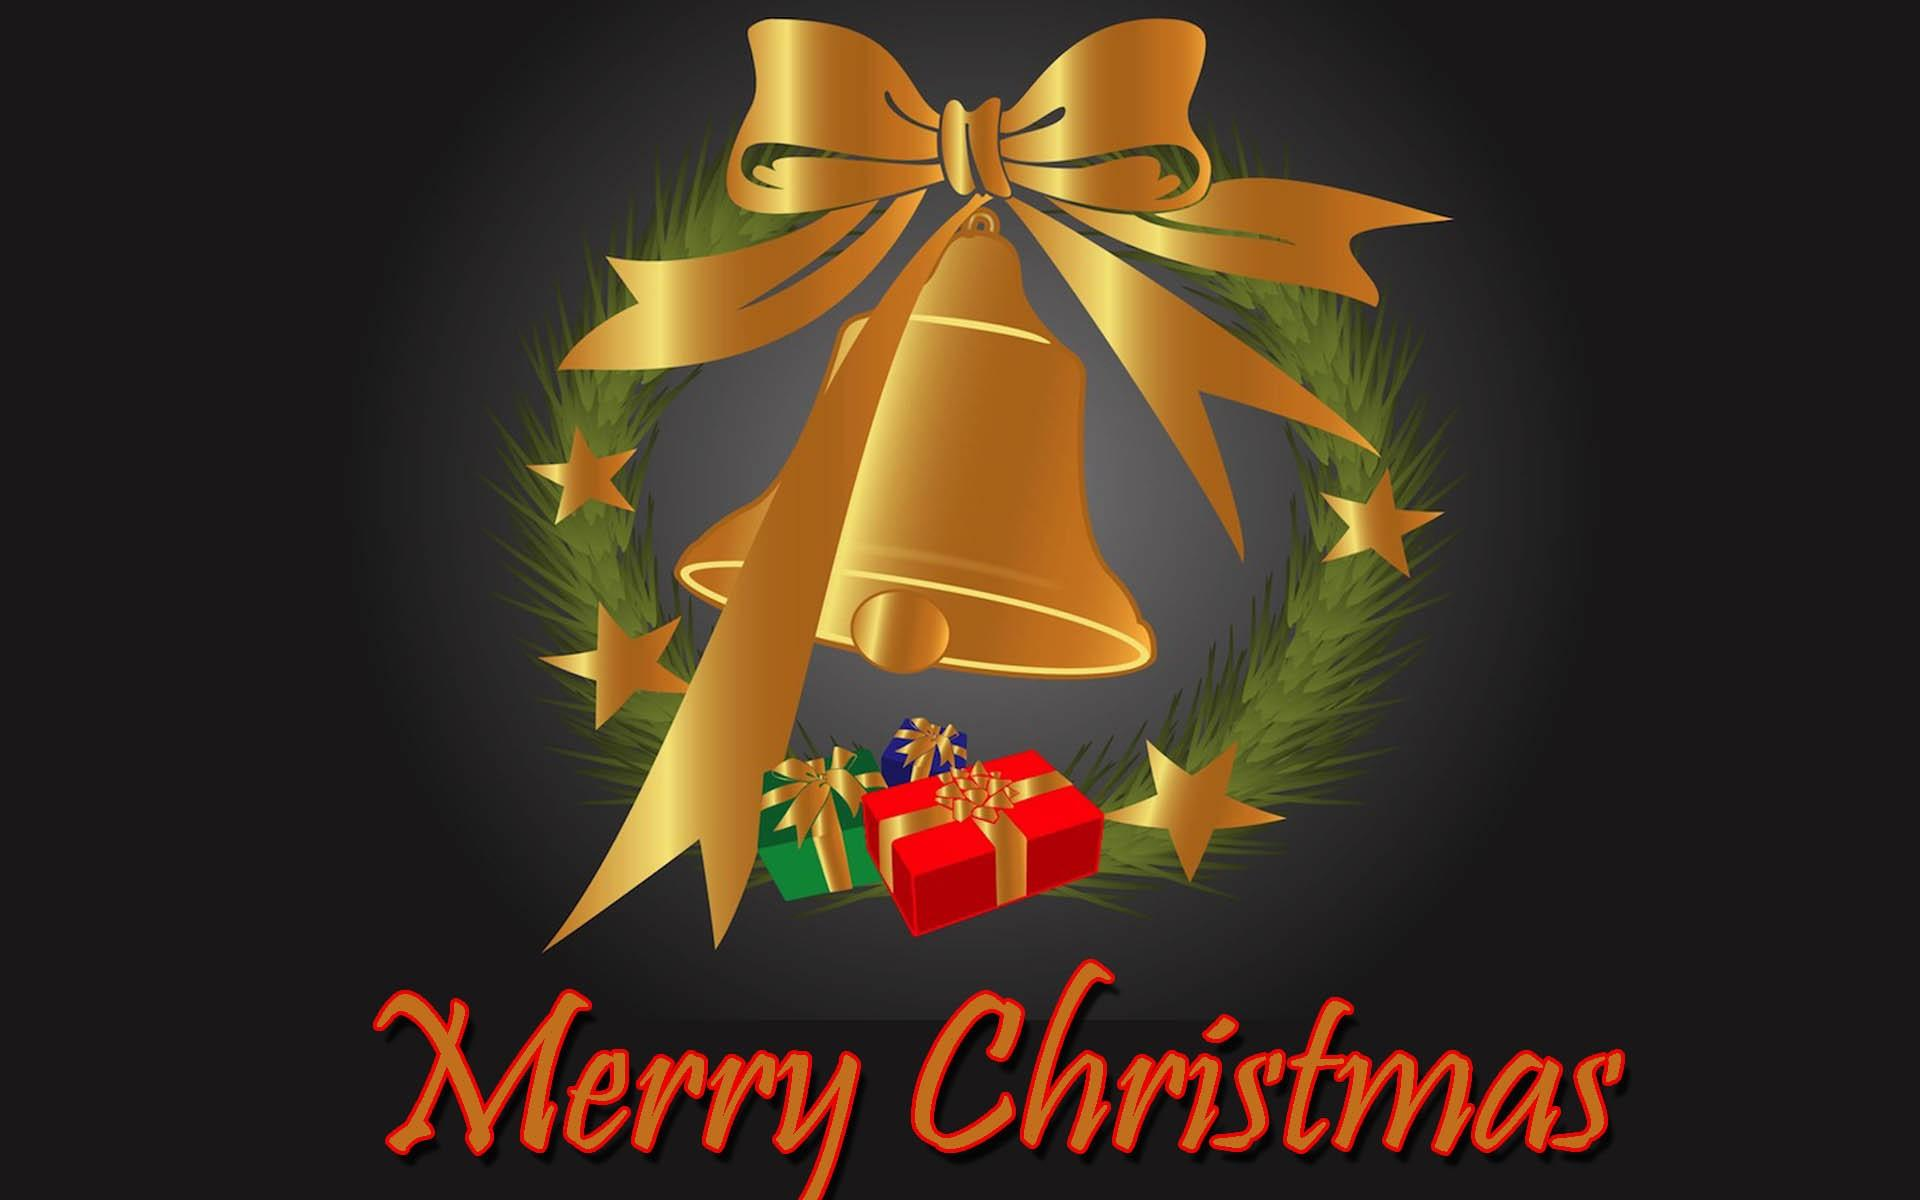 Jingle-Bells-Merry-Christmas-2014-Wishes